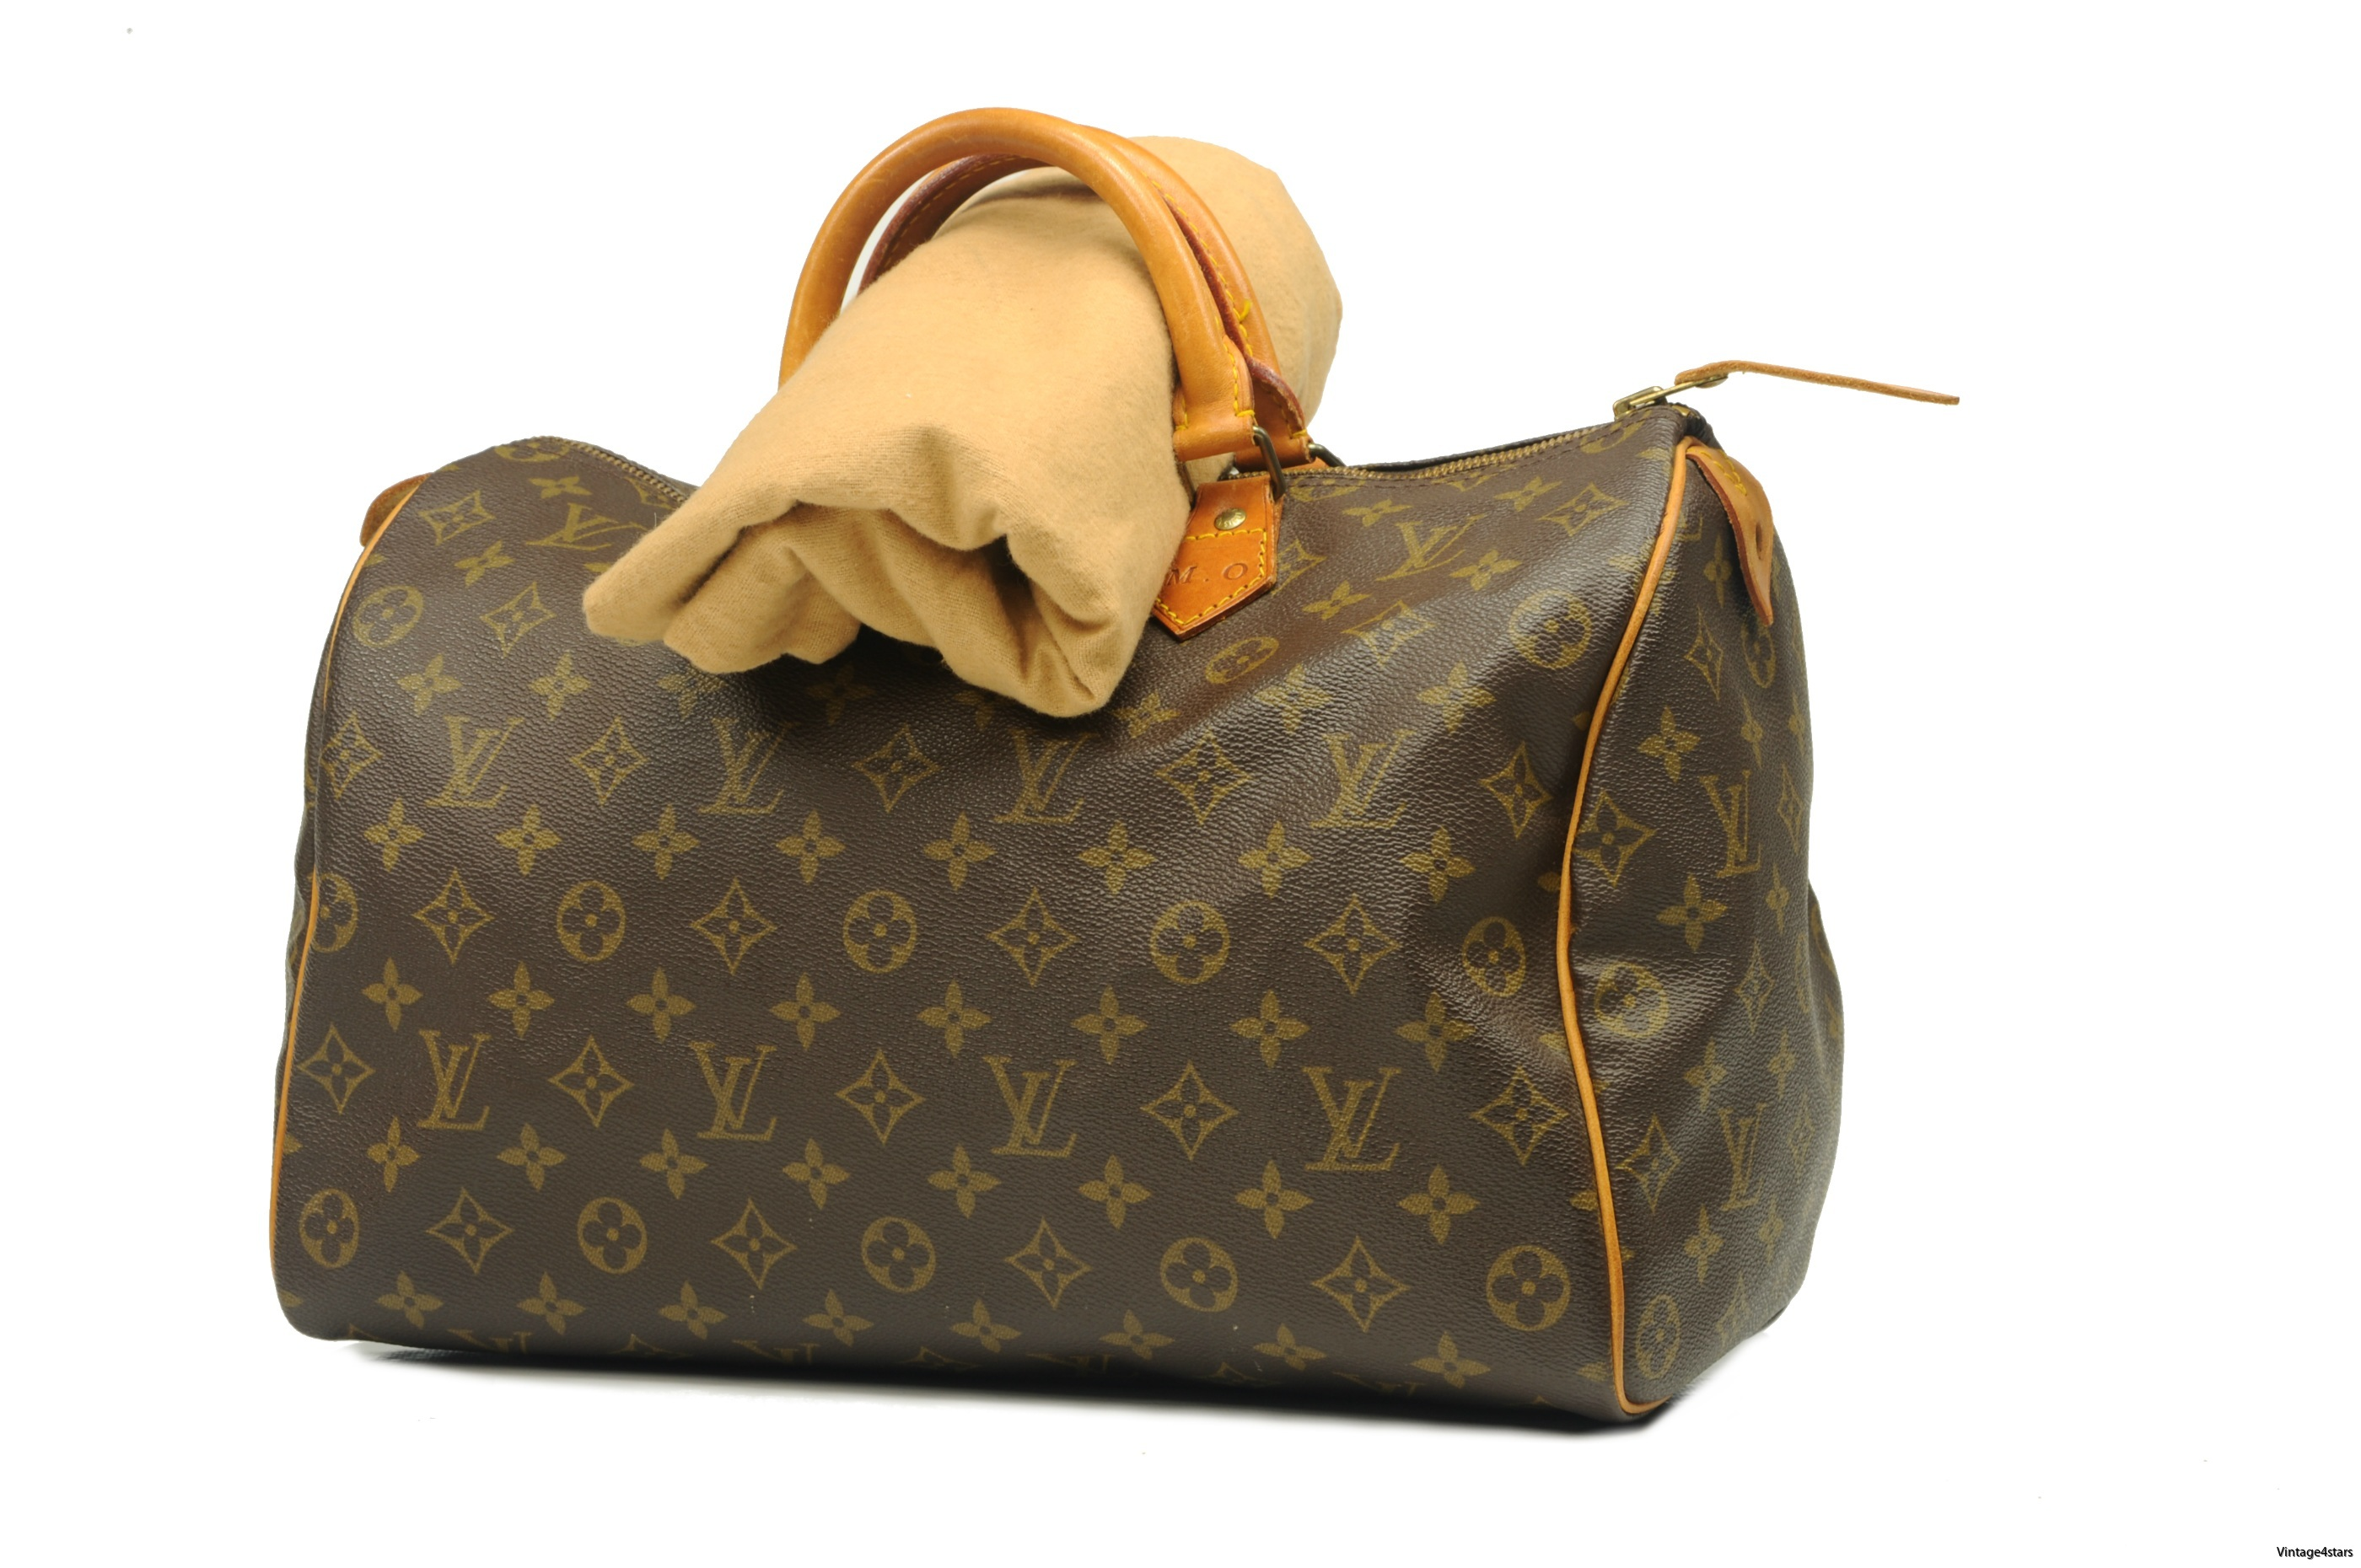 Louis Vuitton Speedy 35 Monogram 10